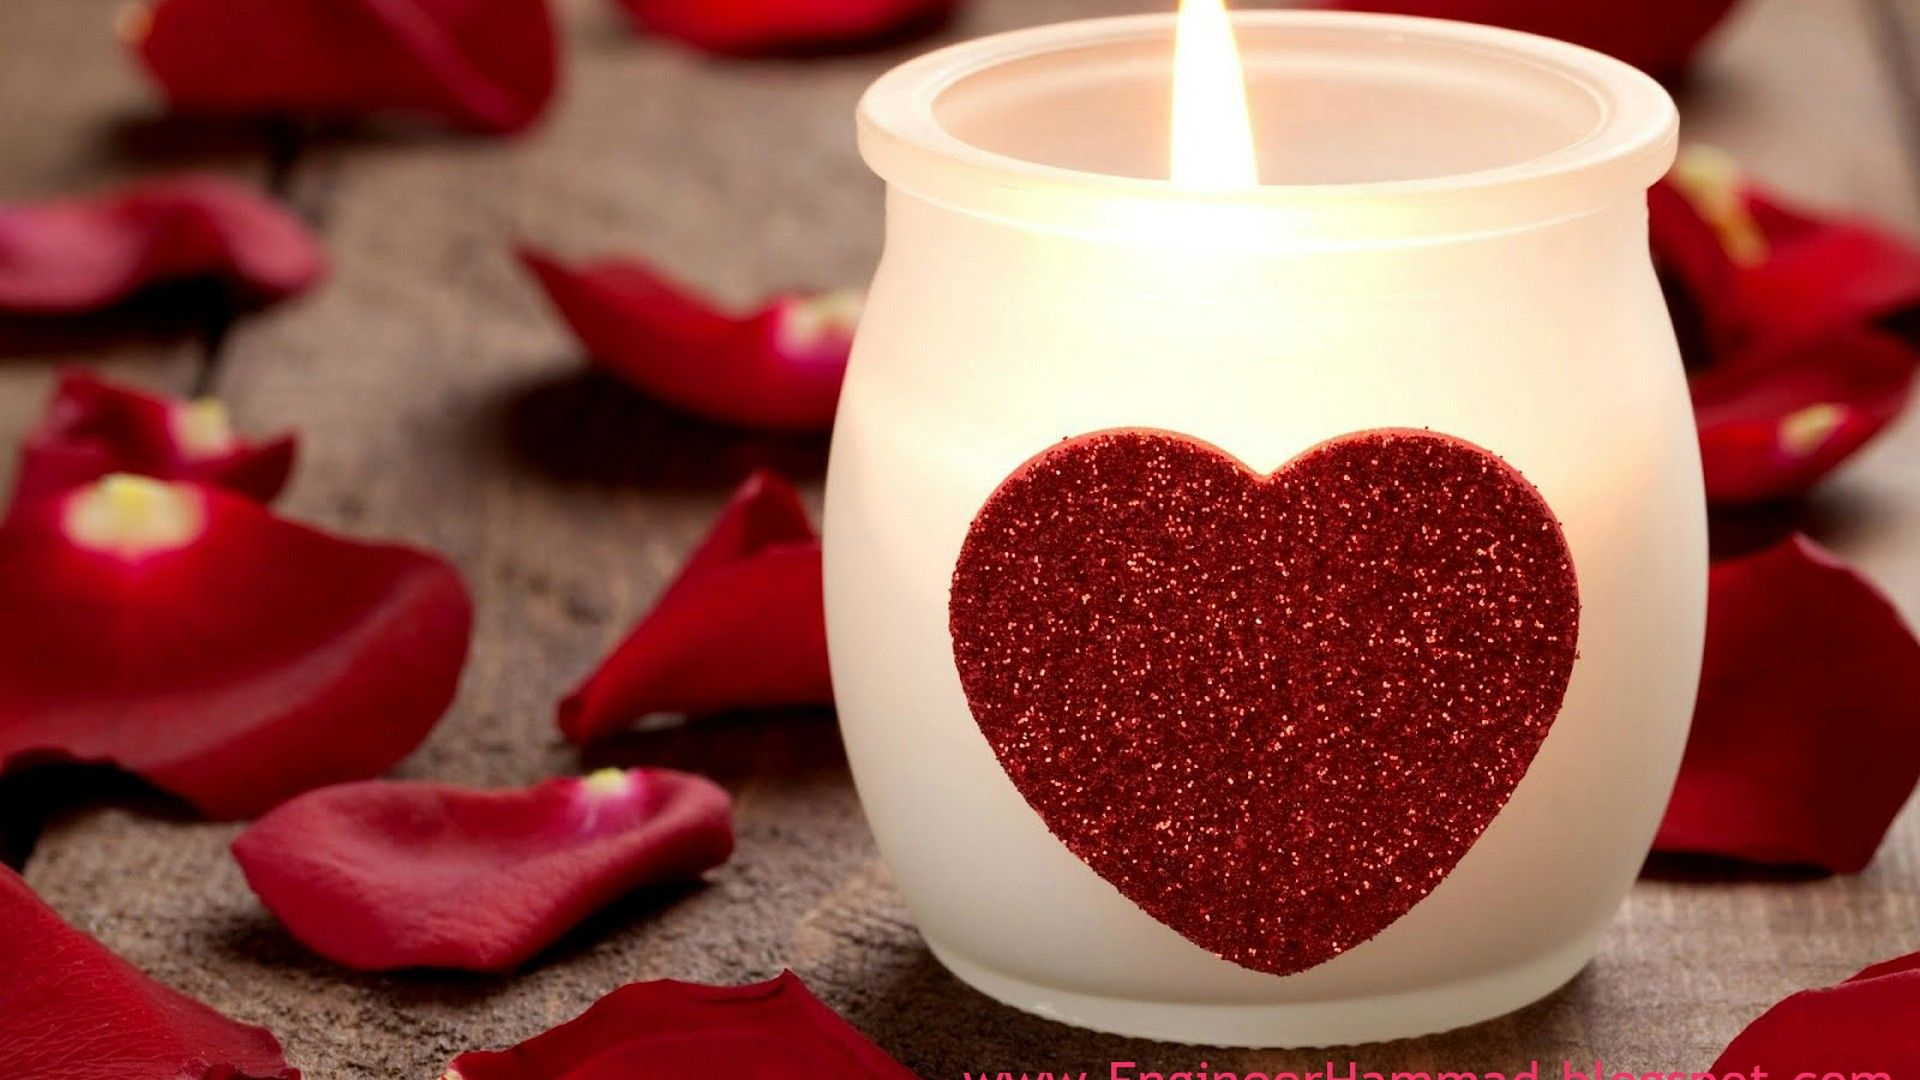 Live Wallpaper Hd Candles Wallpaper Cute Love Wallpapers Best Candles